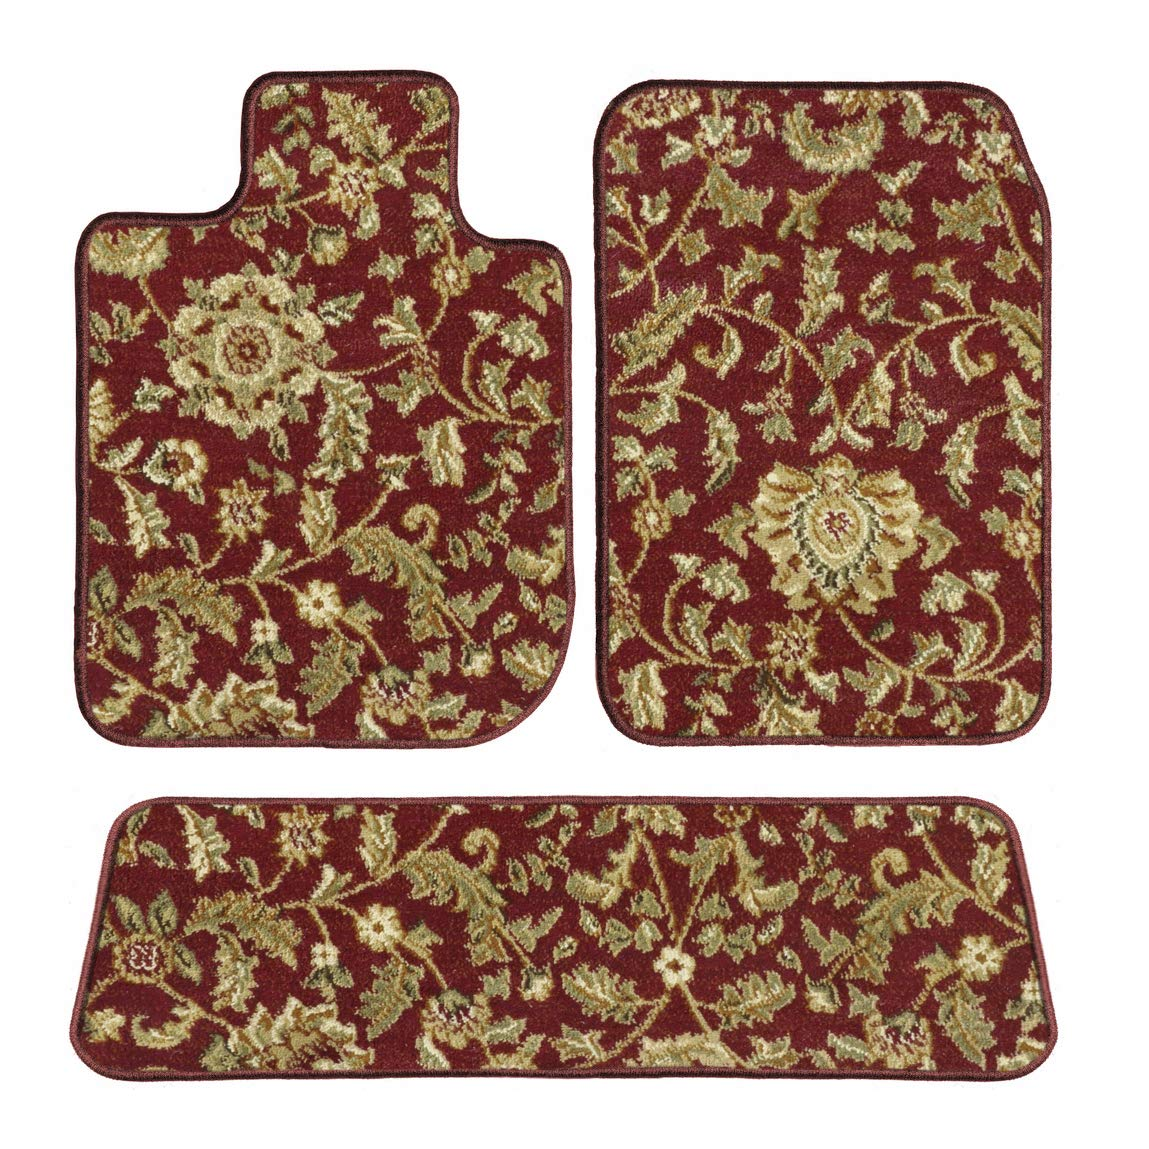 GGBAILEY D4637A-S2B-RD-IS Custom Fit Automotive Carpet Floor Mats for 1994, 1995, 1996, 1997, 1998 Land Rover Discovery Red Oriental Driver, Passenger & Rear